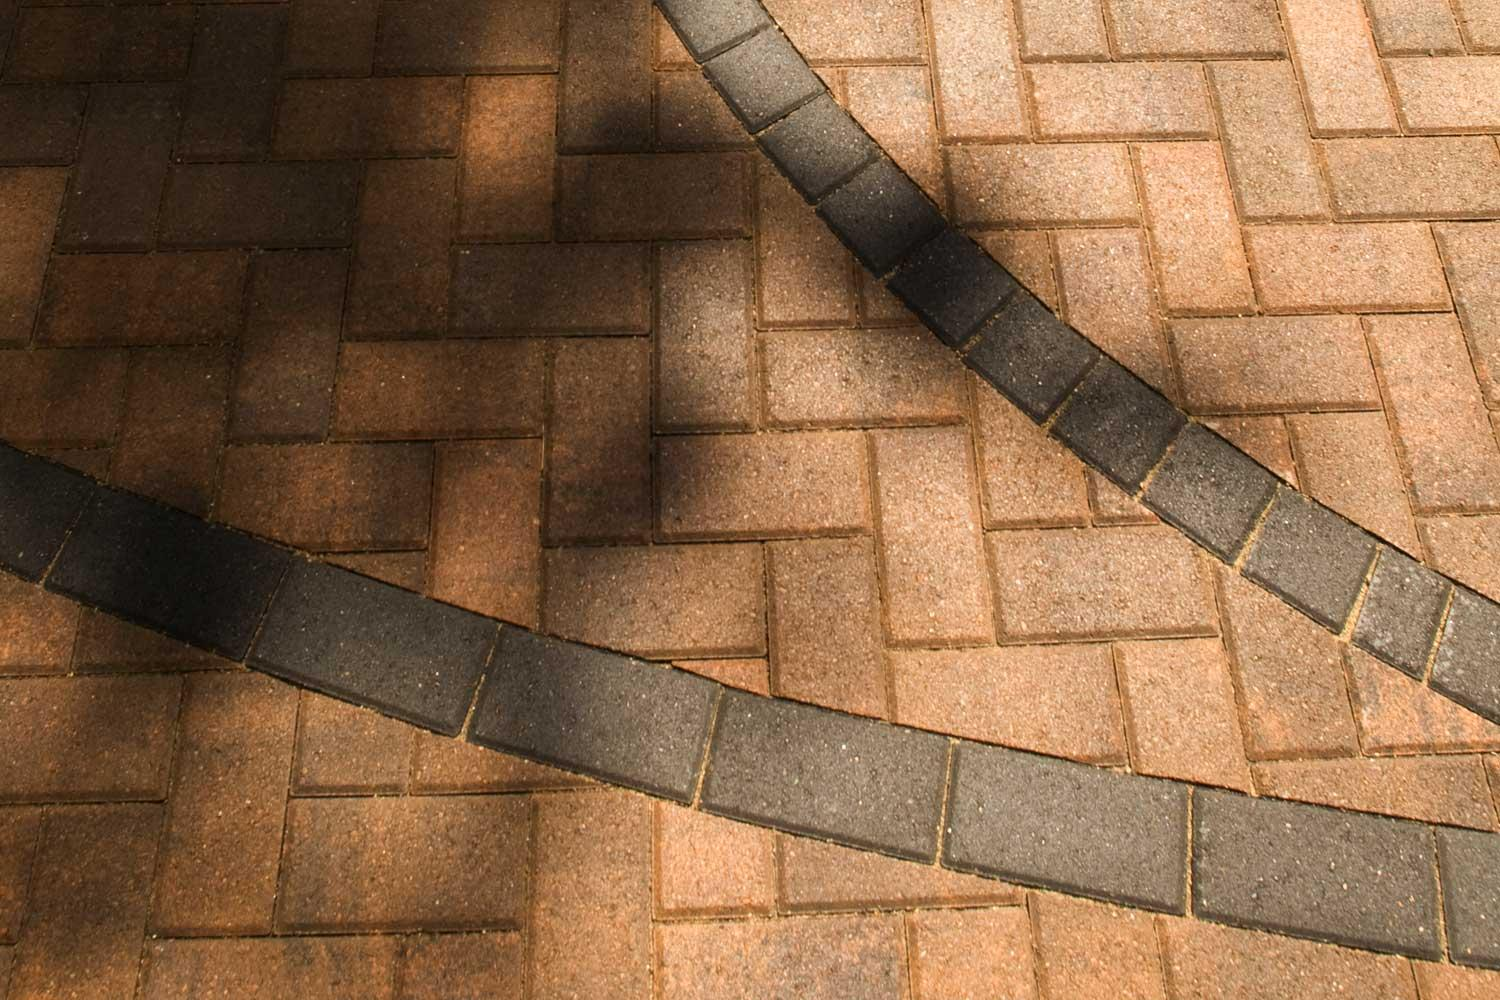 Beautifully inset basketball court lines in the brick driveway